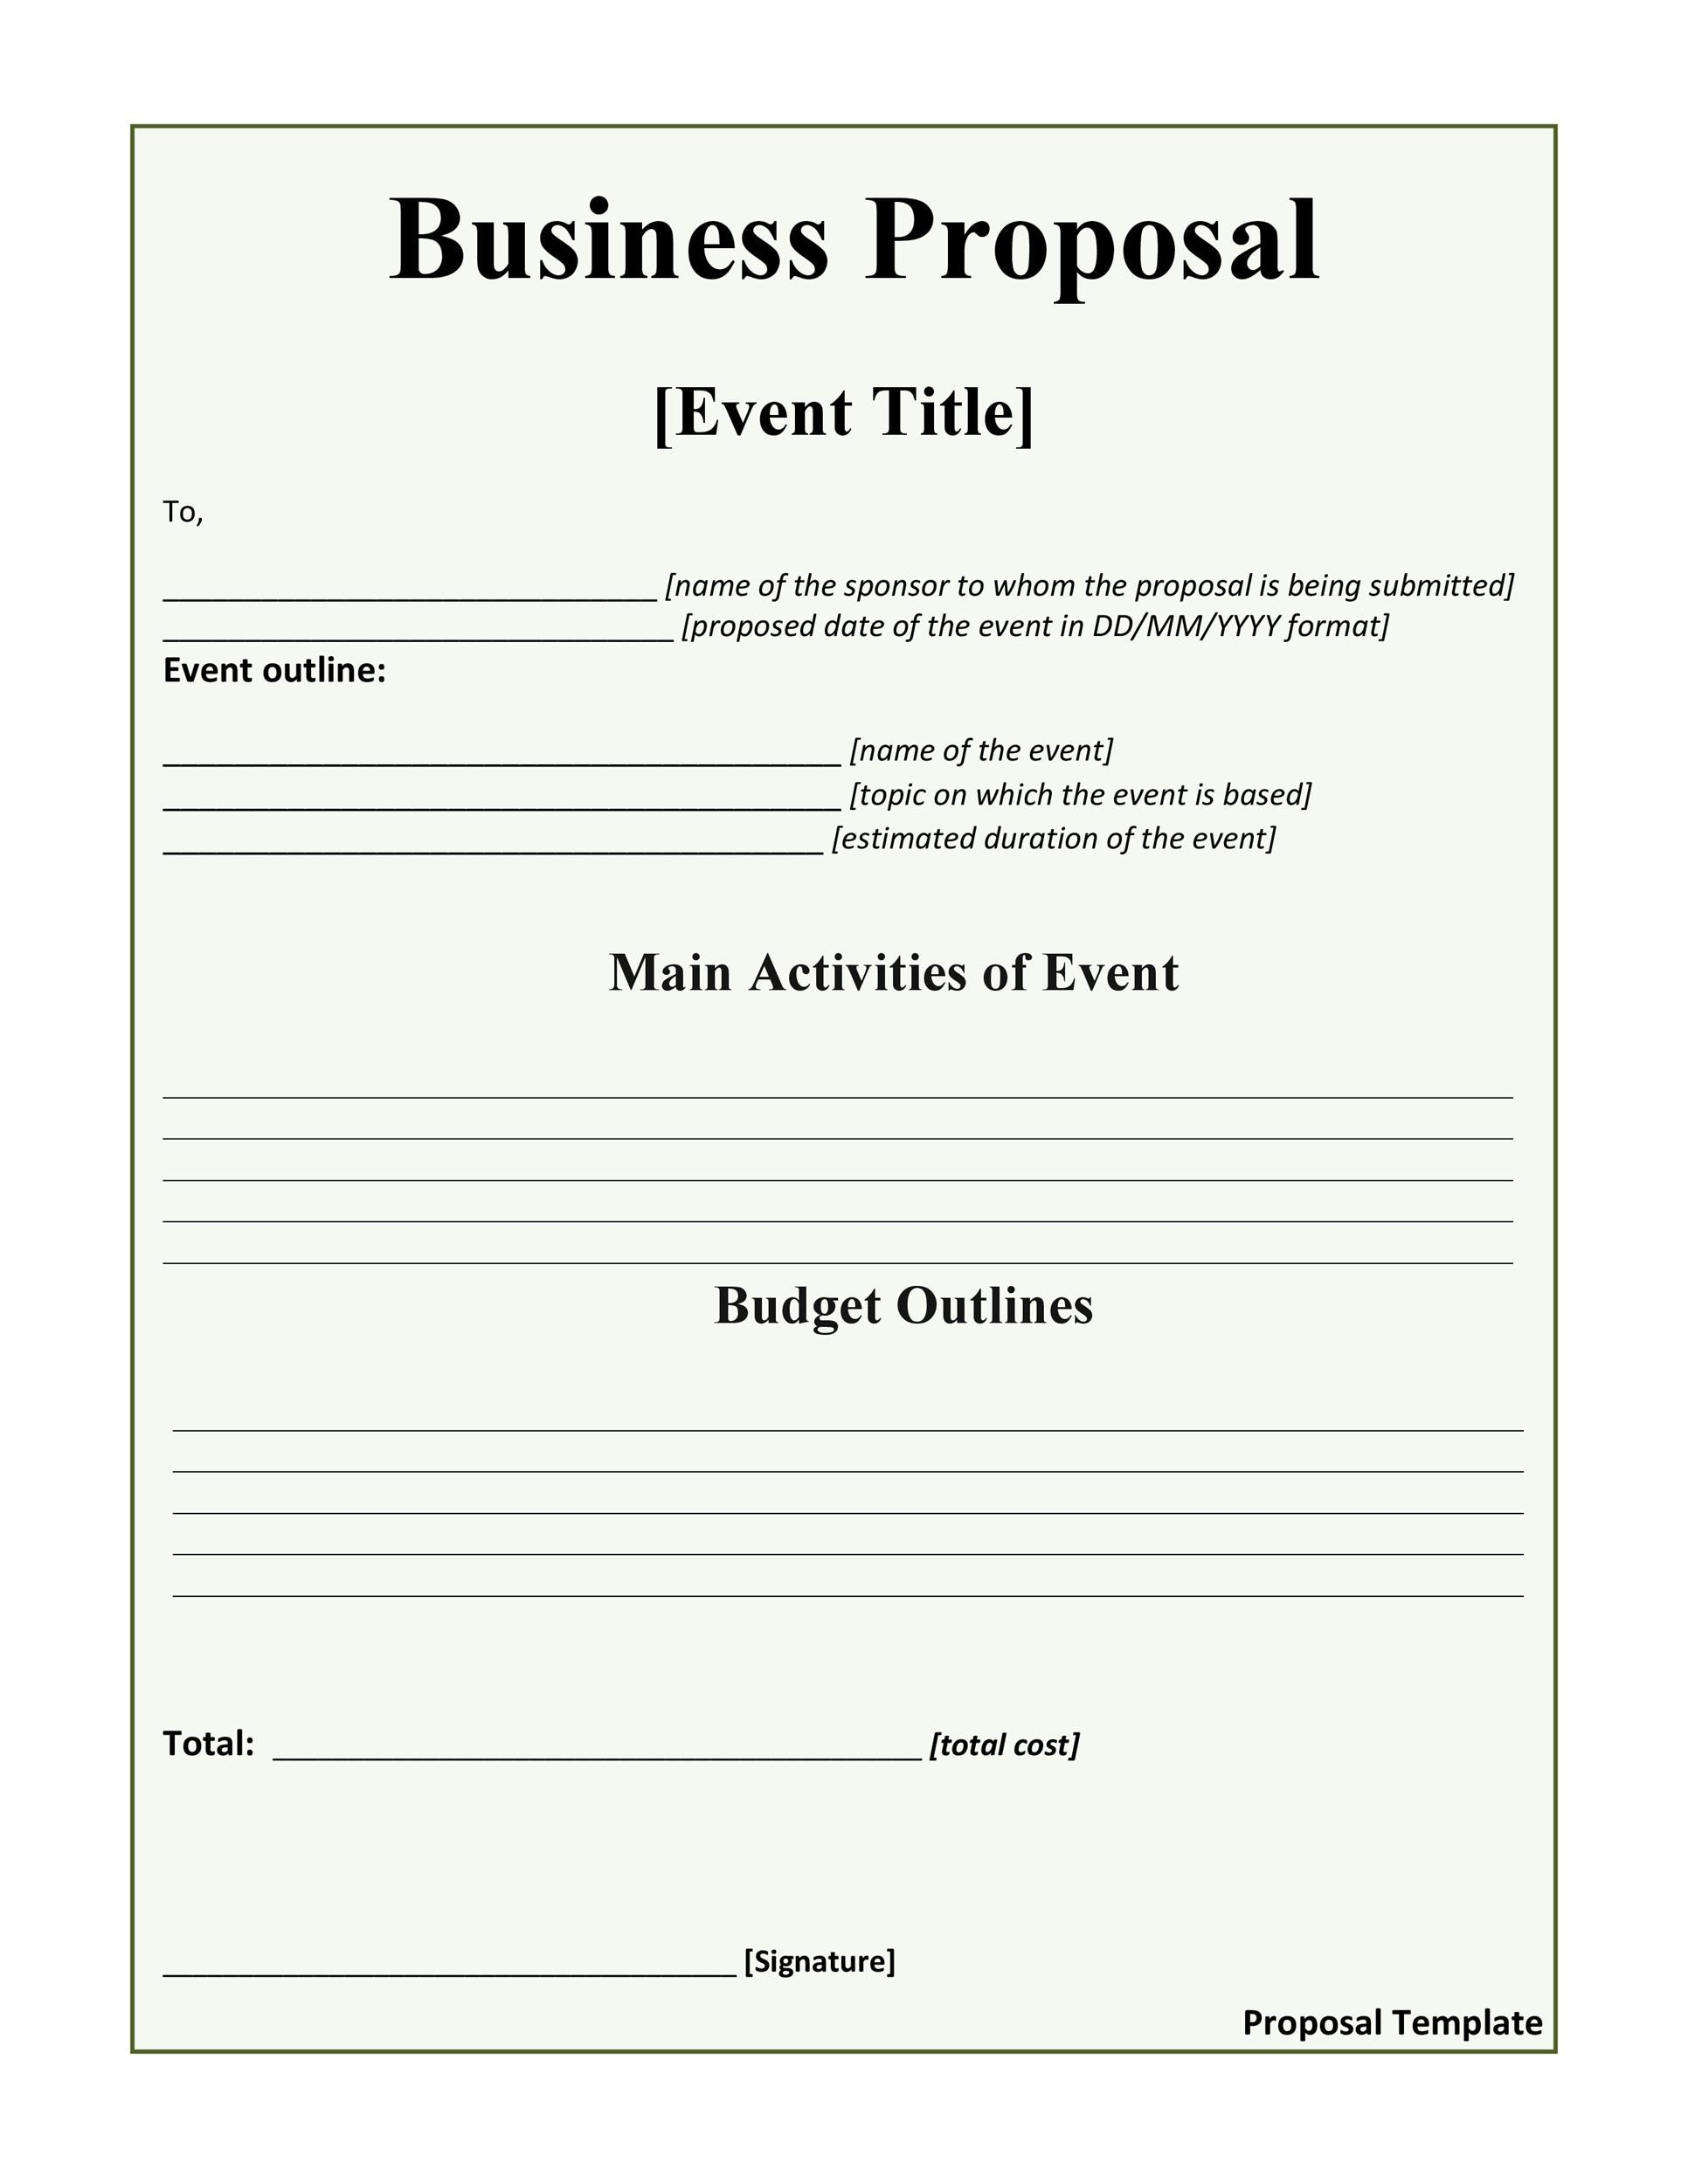 printable business proposal template 10 - Free Proposal Template